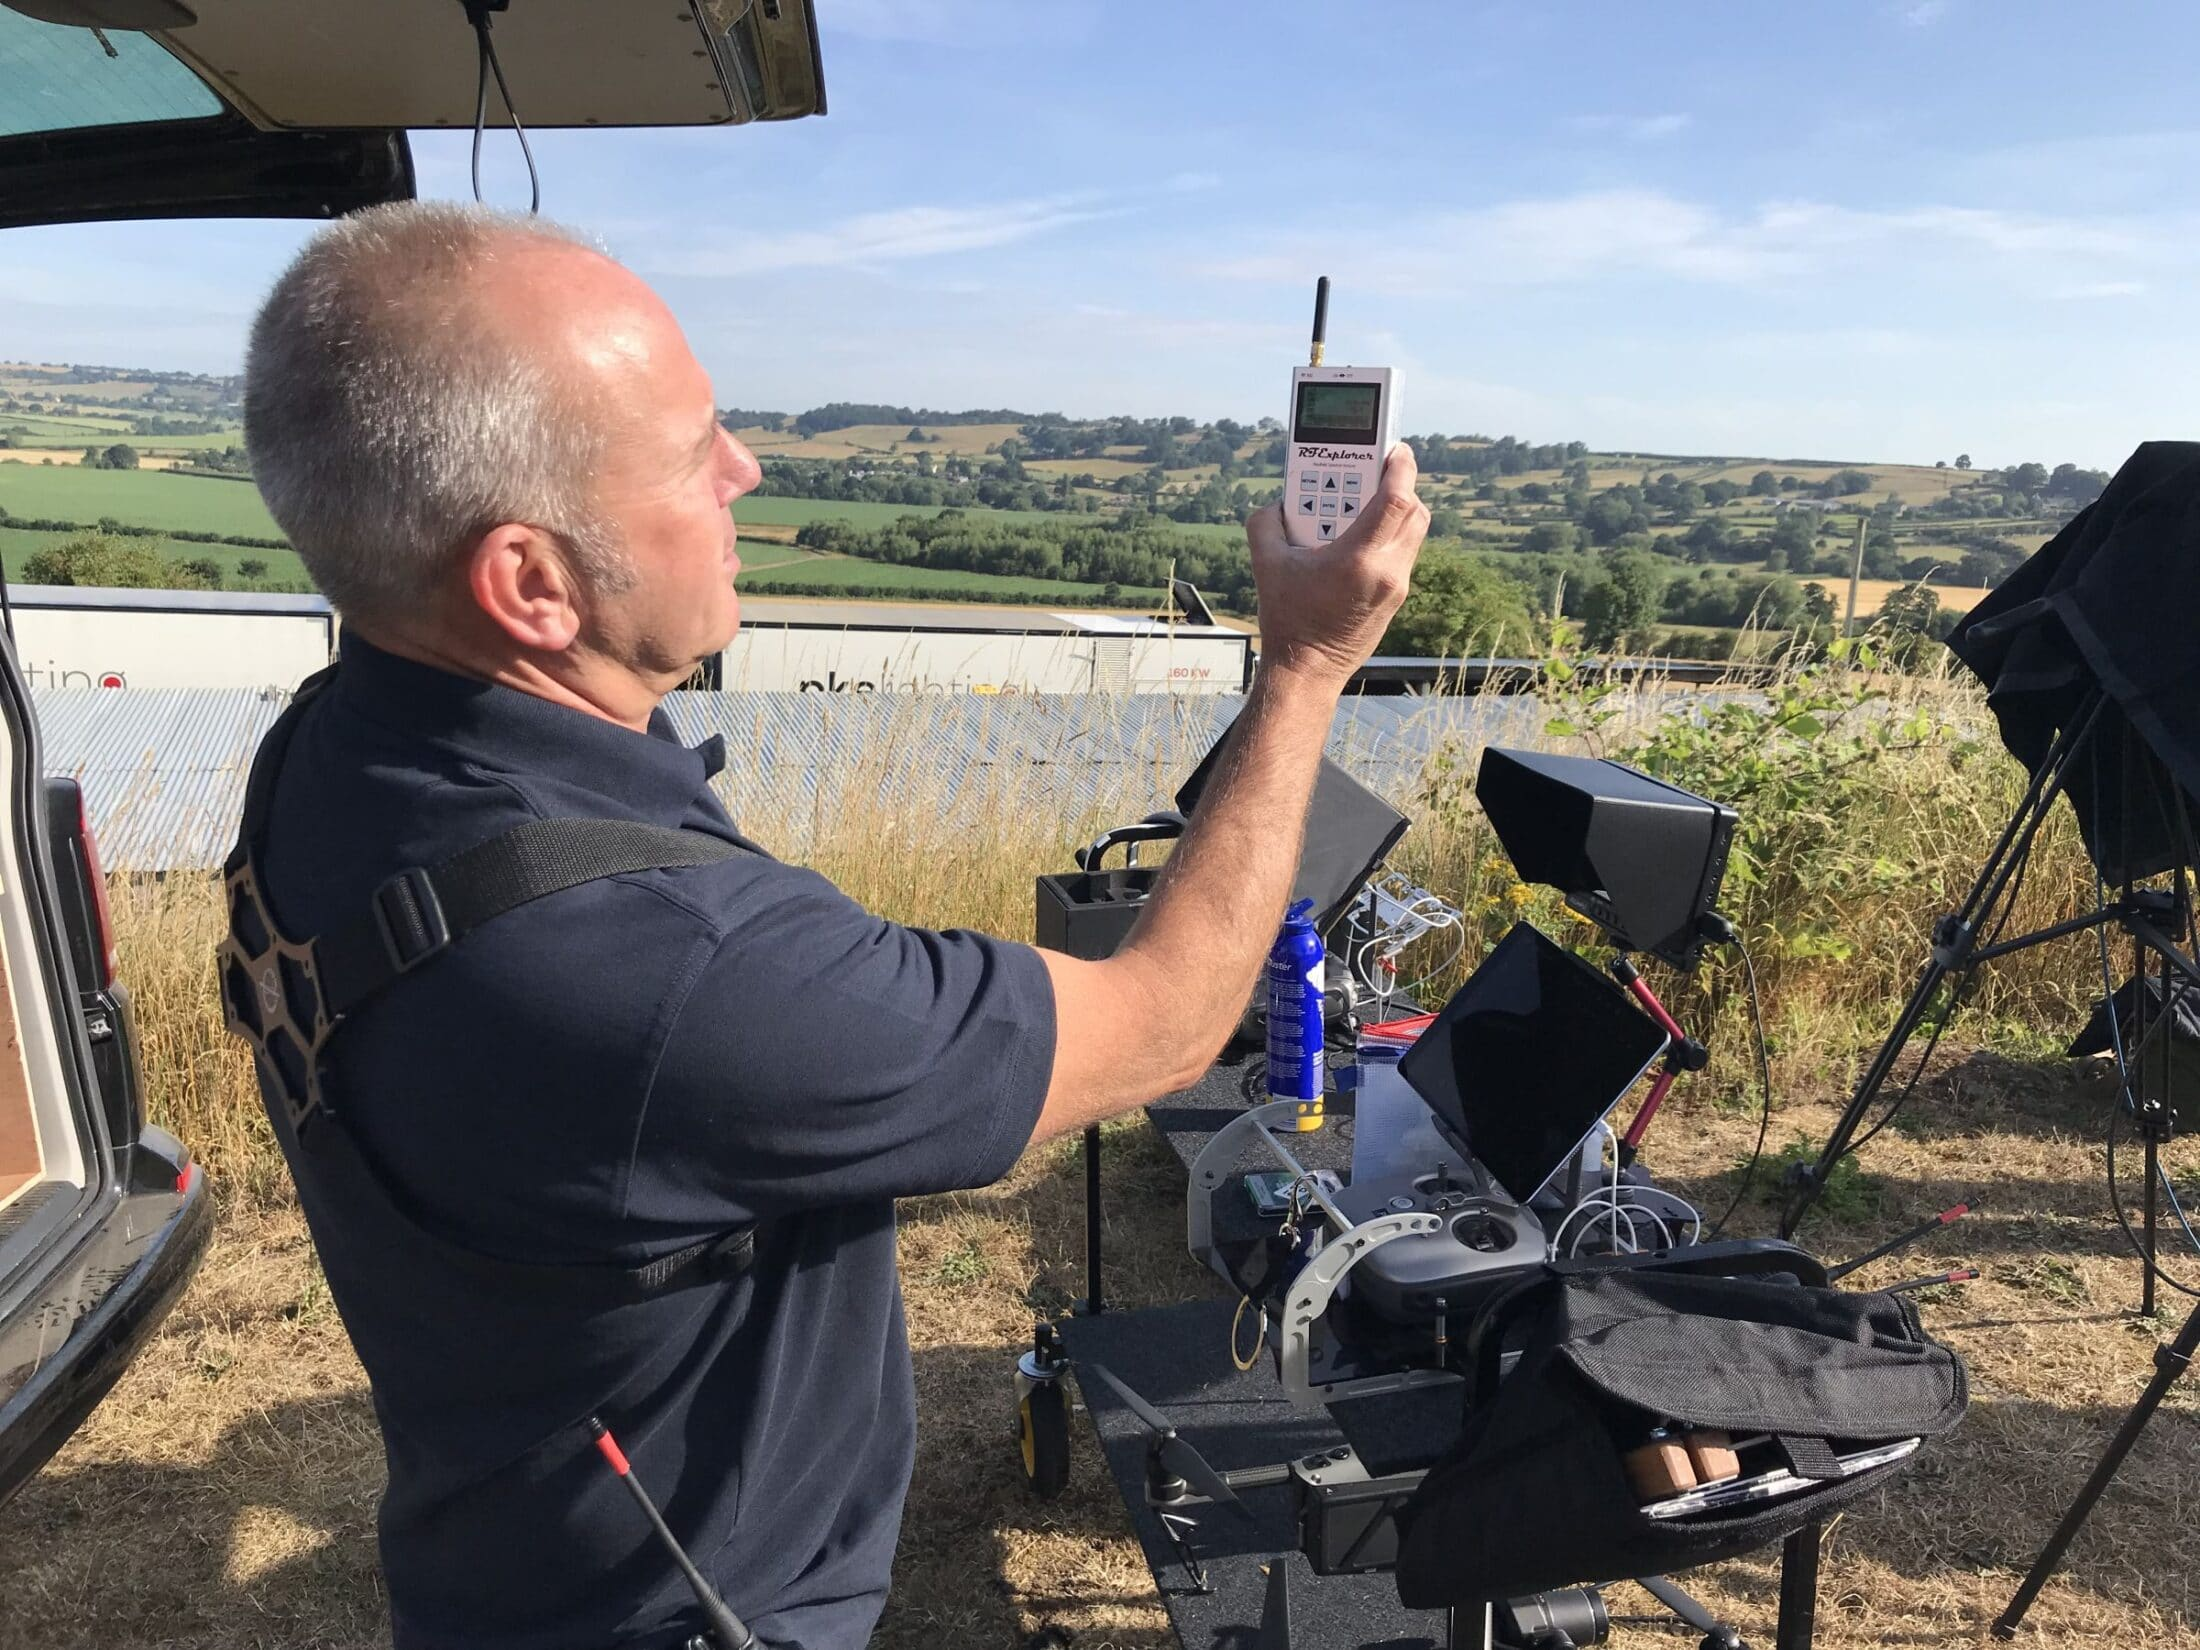 Darren Miller checking Radio Waves stood with the drone remote control, trees , grass and fields